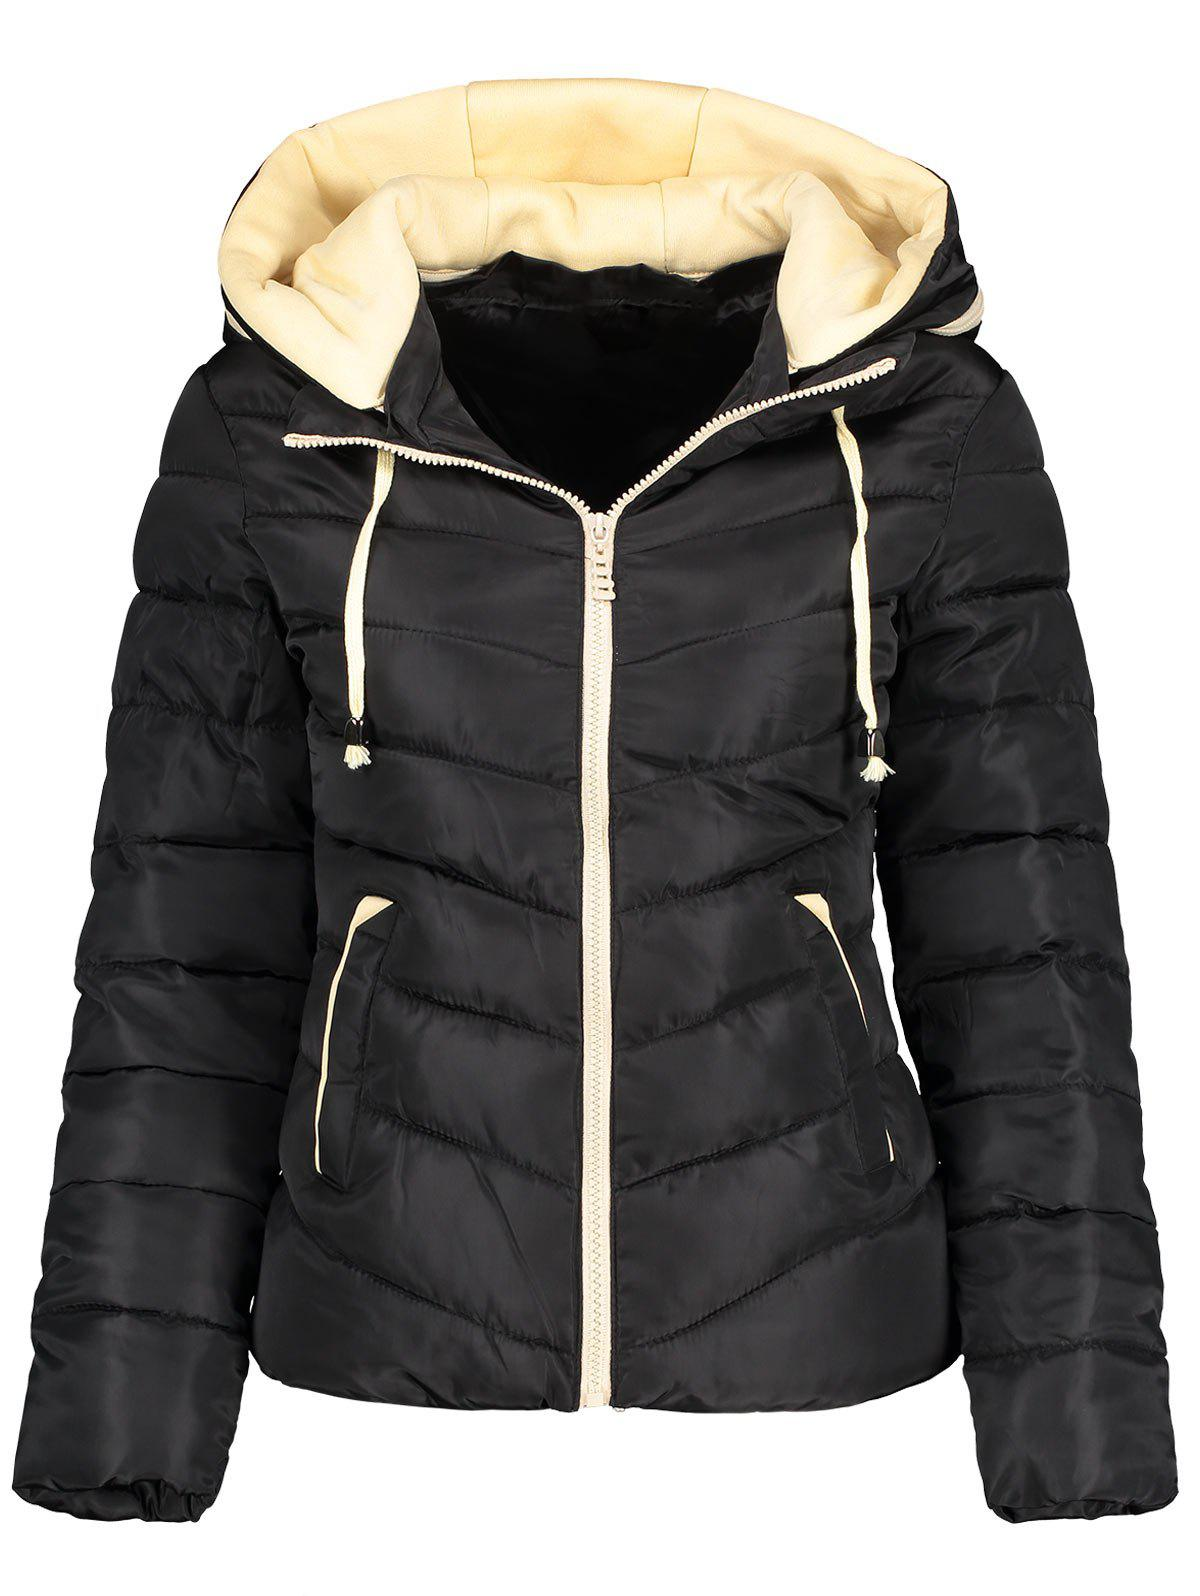 Hooded Drawstring Padded Quilted JacketWOMEN<br><br>Size: 2XL; Color: BLACK; Clothes Type: Padded; Material: Polyester; Type: Slim; Shirt Length: Regular; Sleeve Length: Full; Collar: Hooded; Pattern Type: Solid; Style: Fashion; Season: Fall,Spring; Weight: 0.6700kg; Package Contents: 1 x Jacket;